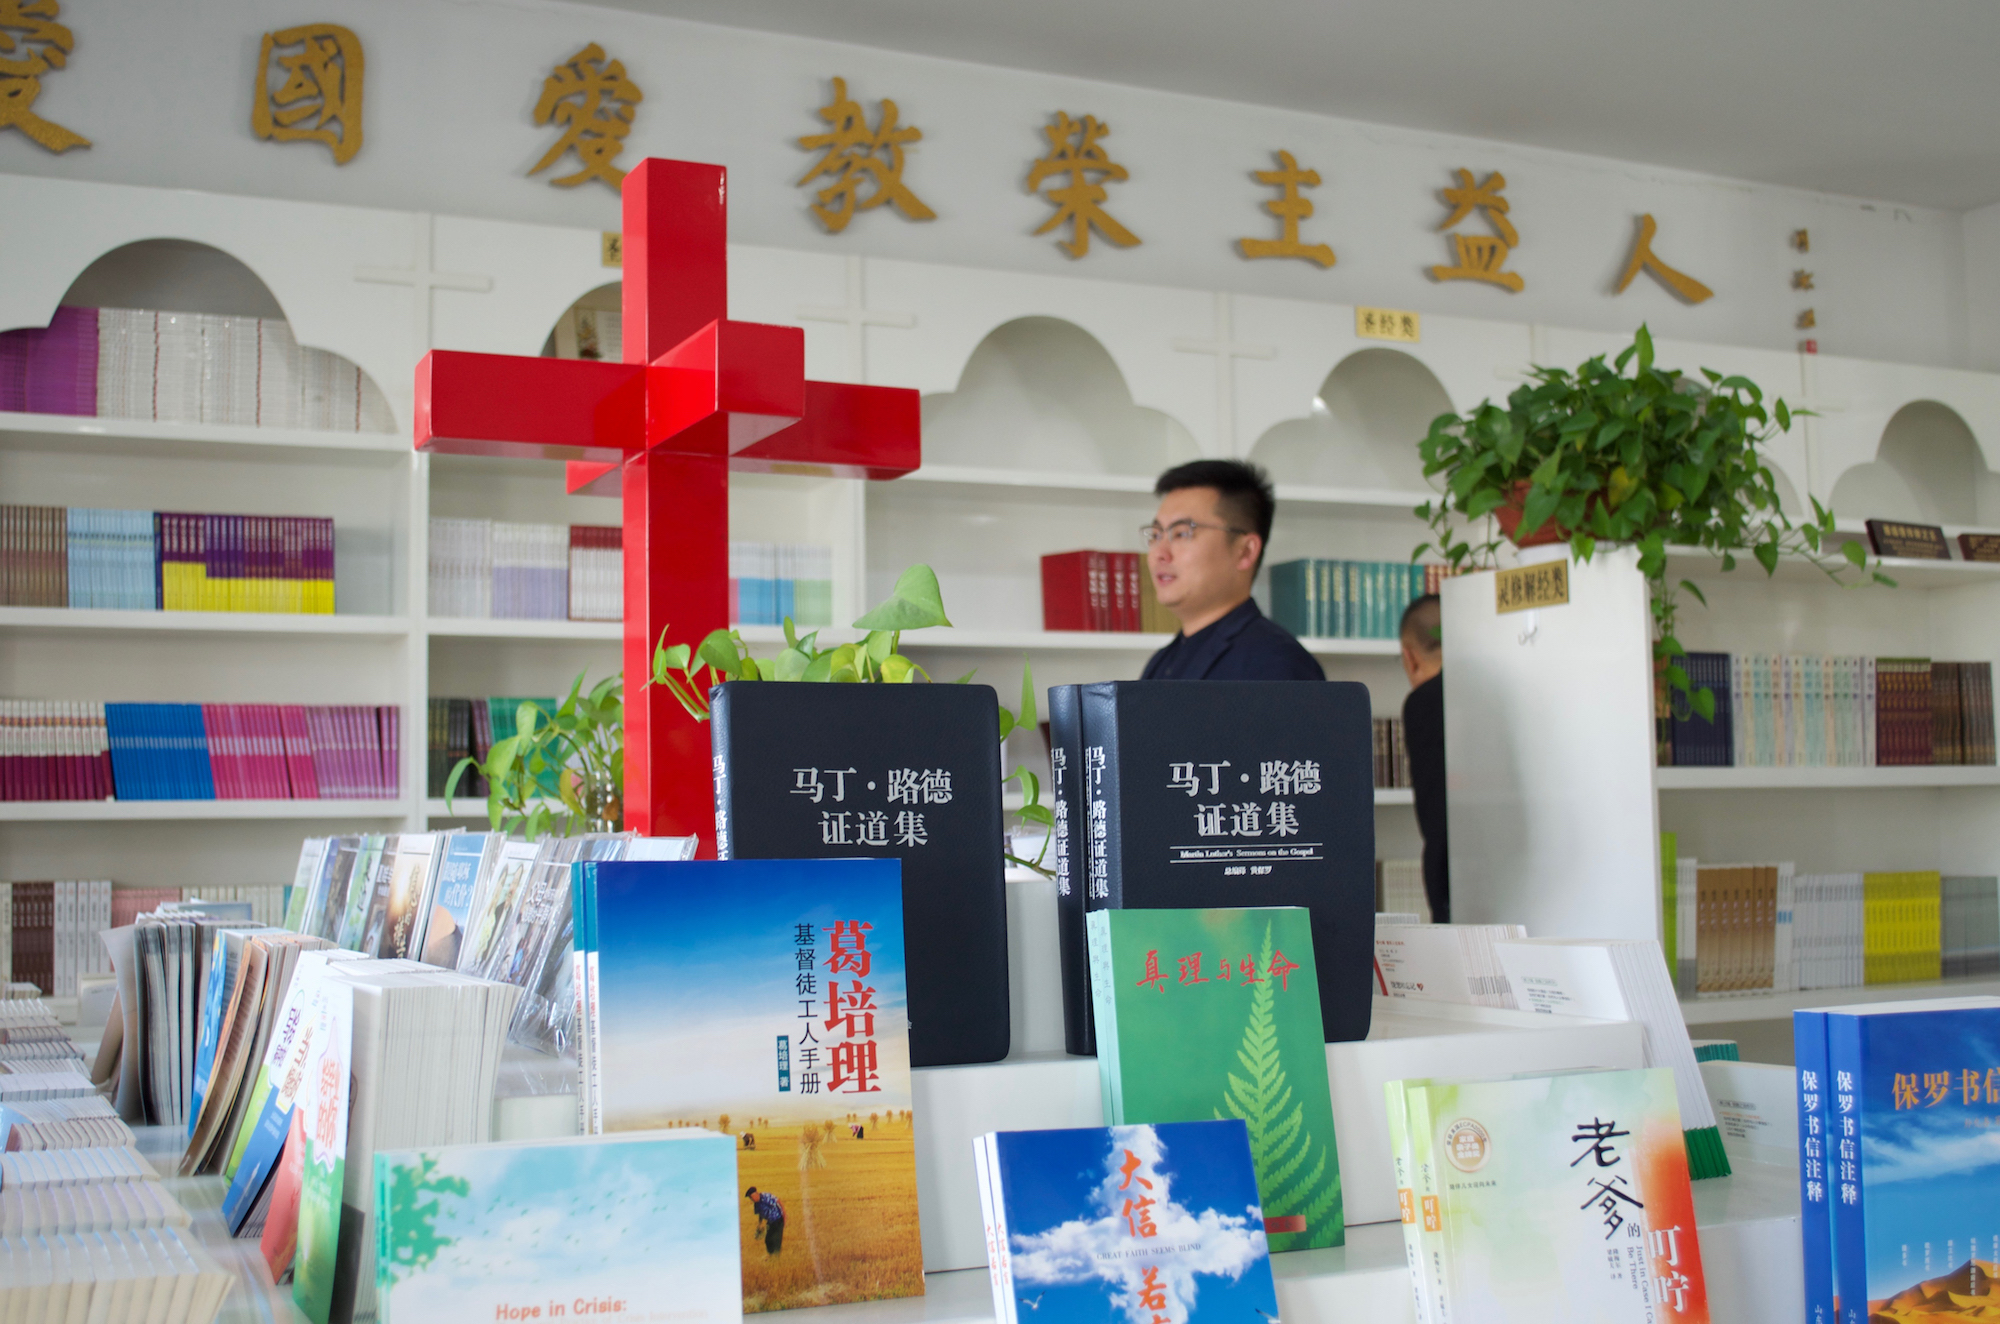 Tightening restrictions on Chinese Christians were already on the books